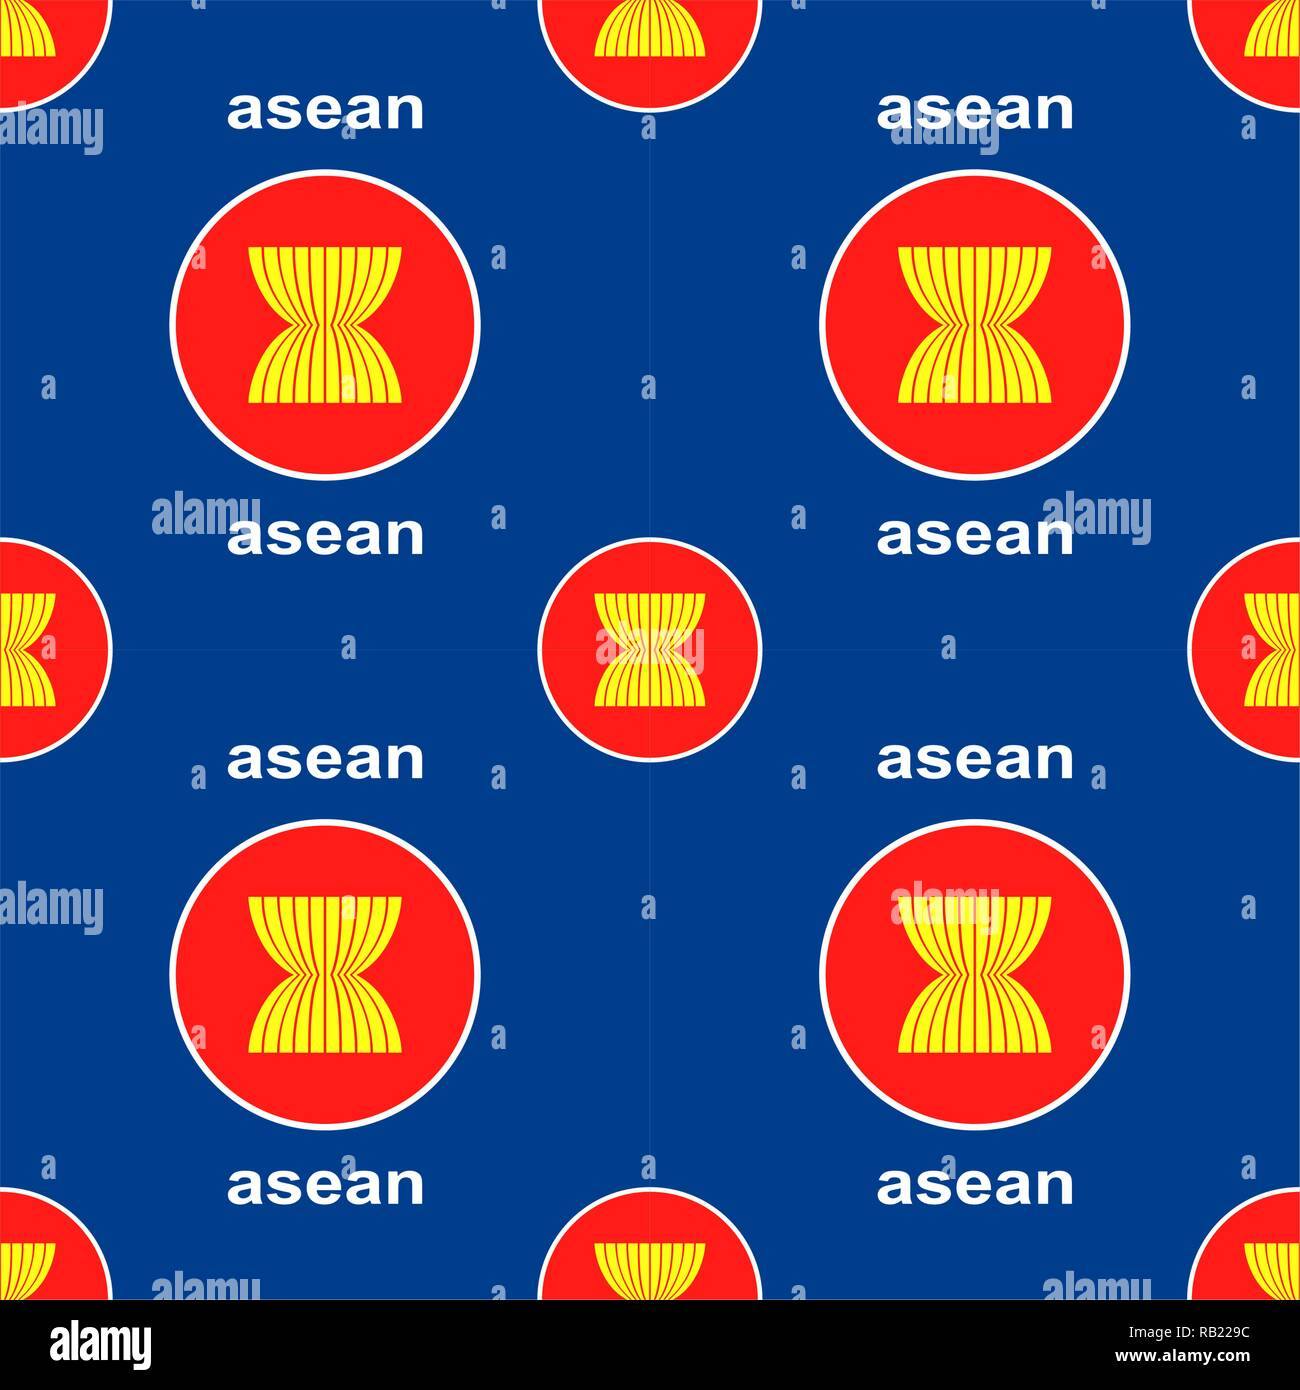 ASEAN union emblem seamless background - Stock Image